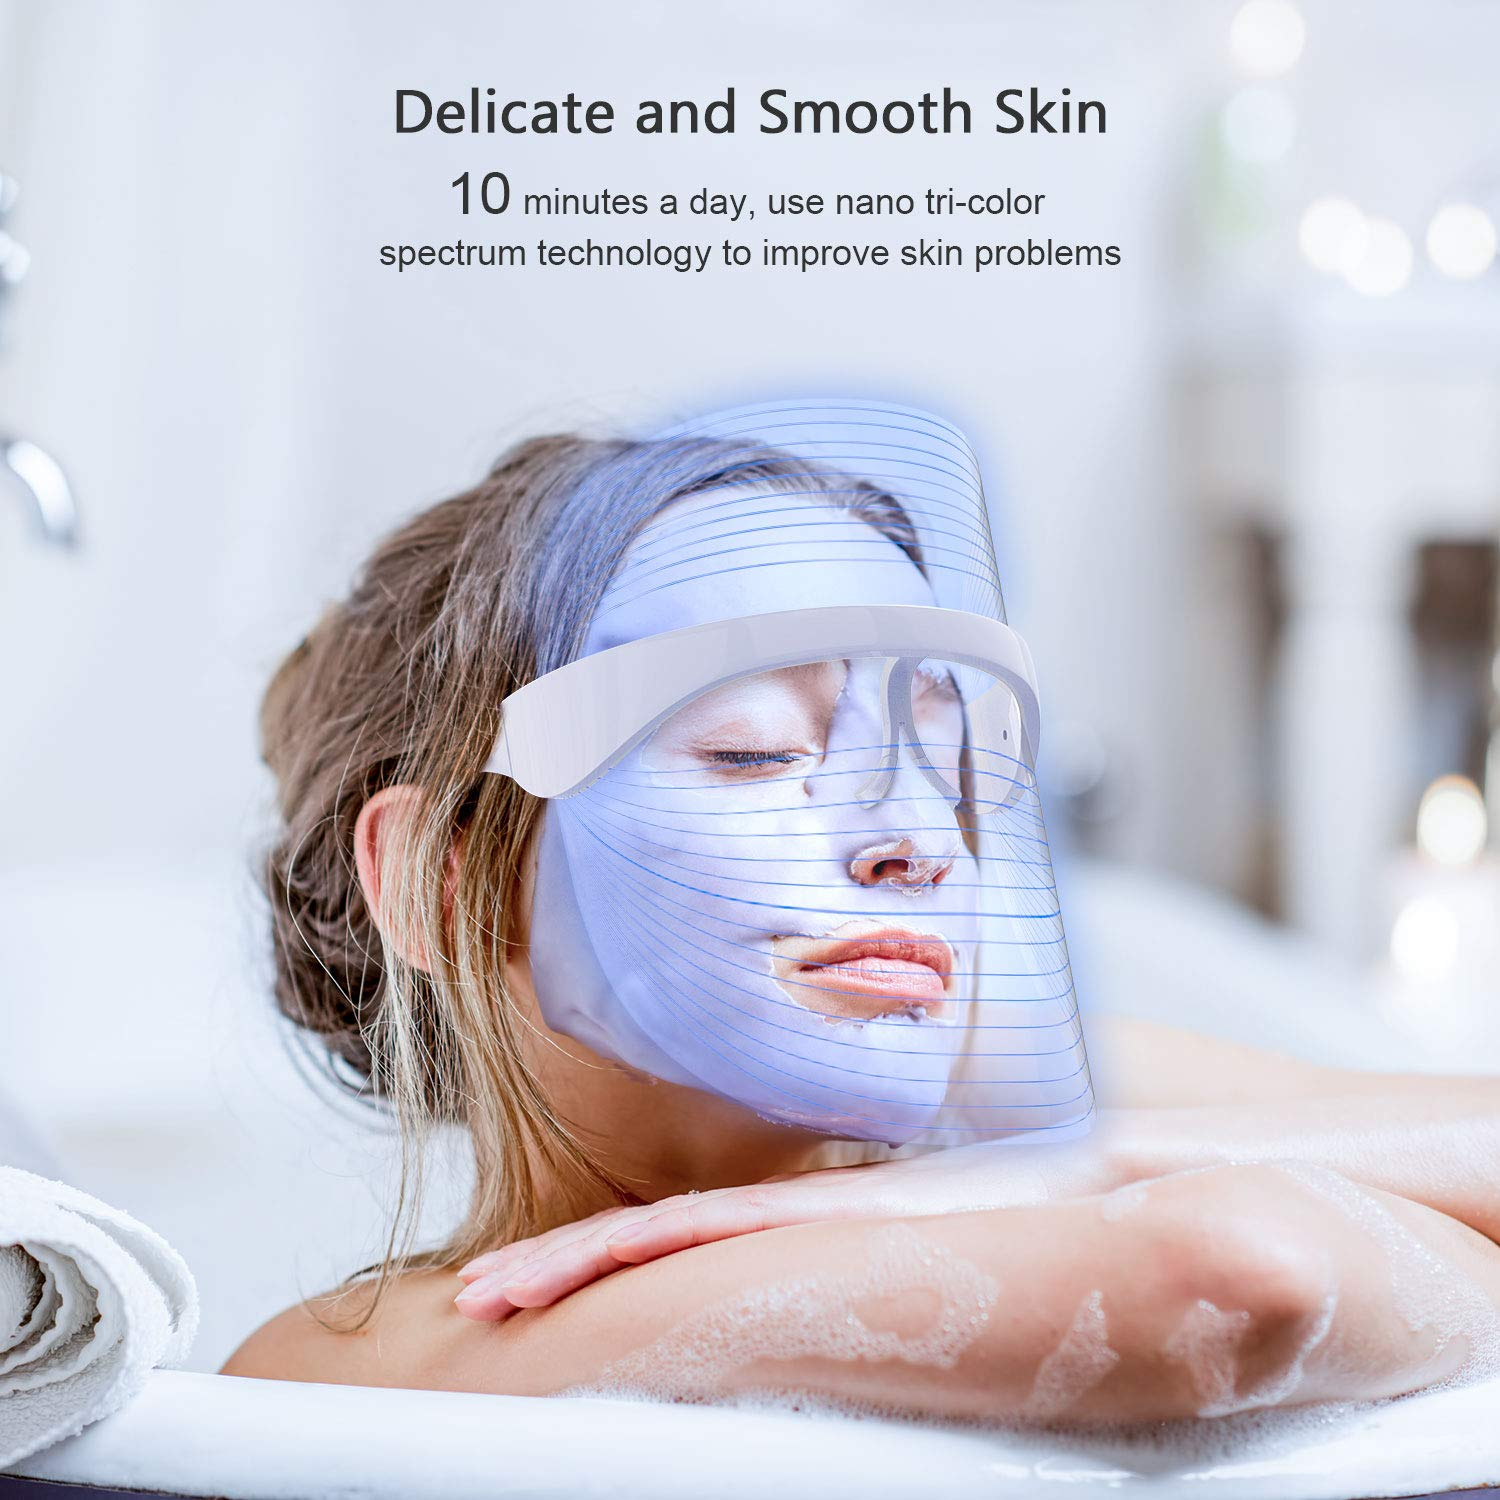 beauty and skincare tools worth buying in 2021 herstylecode 1 Beauty and Skincare Tools Worth Buying in 2021